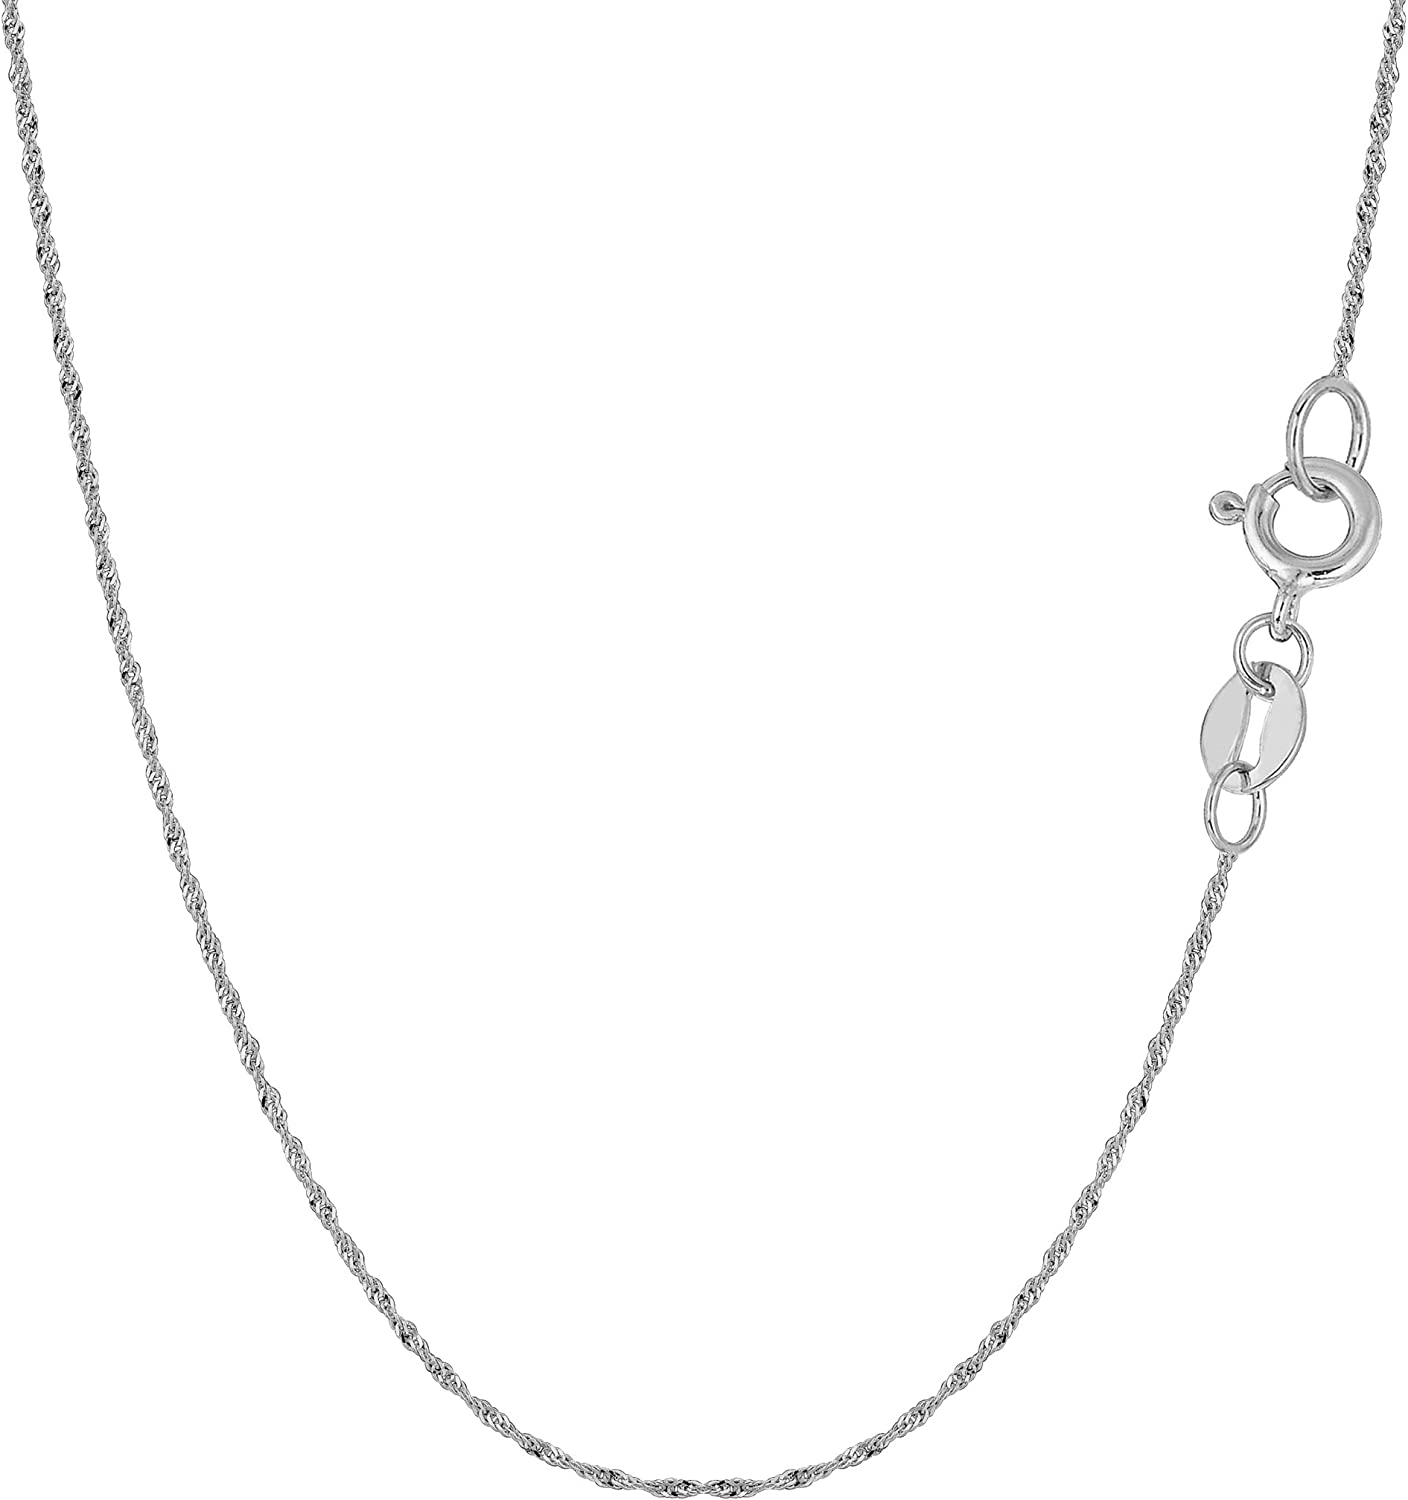 14k White Gold Singapore Chain Necklace, 0.8mm